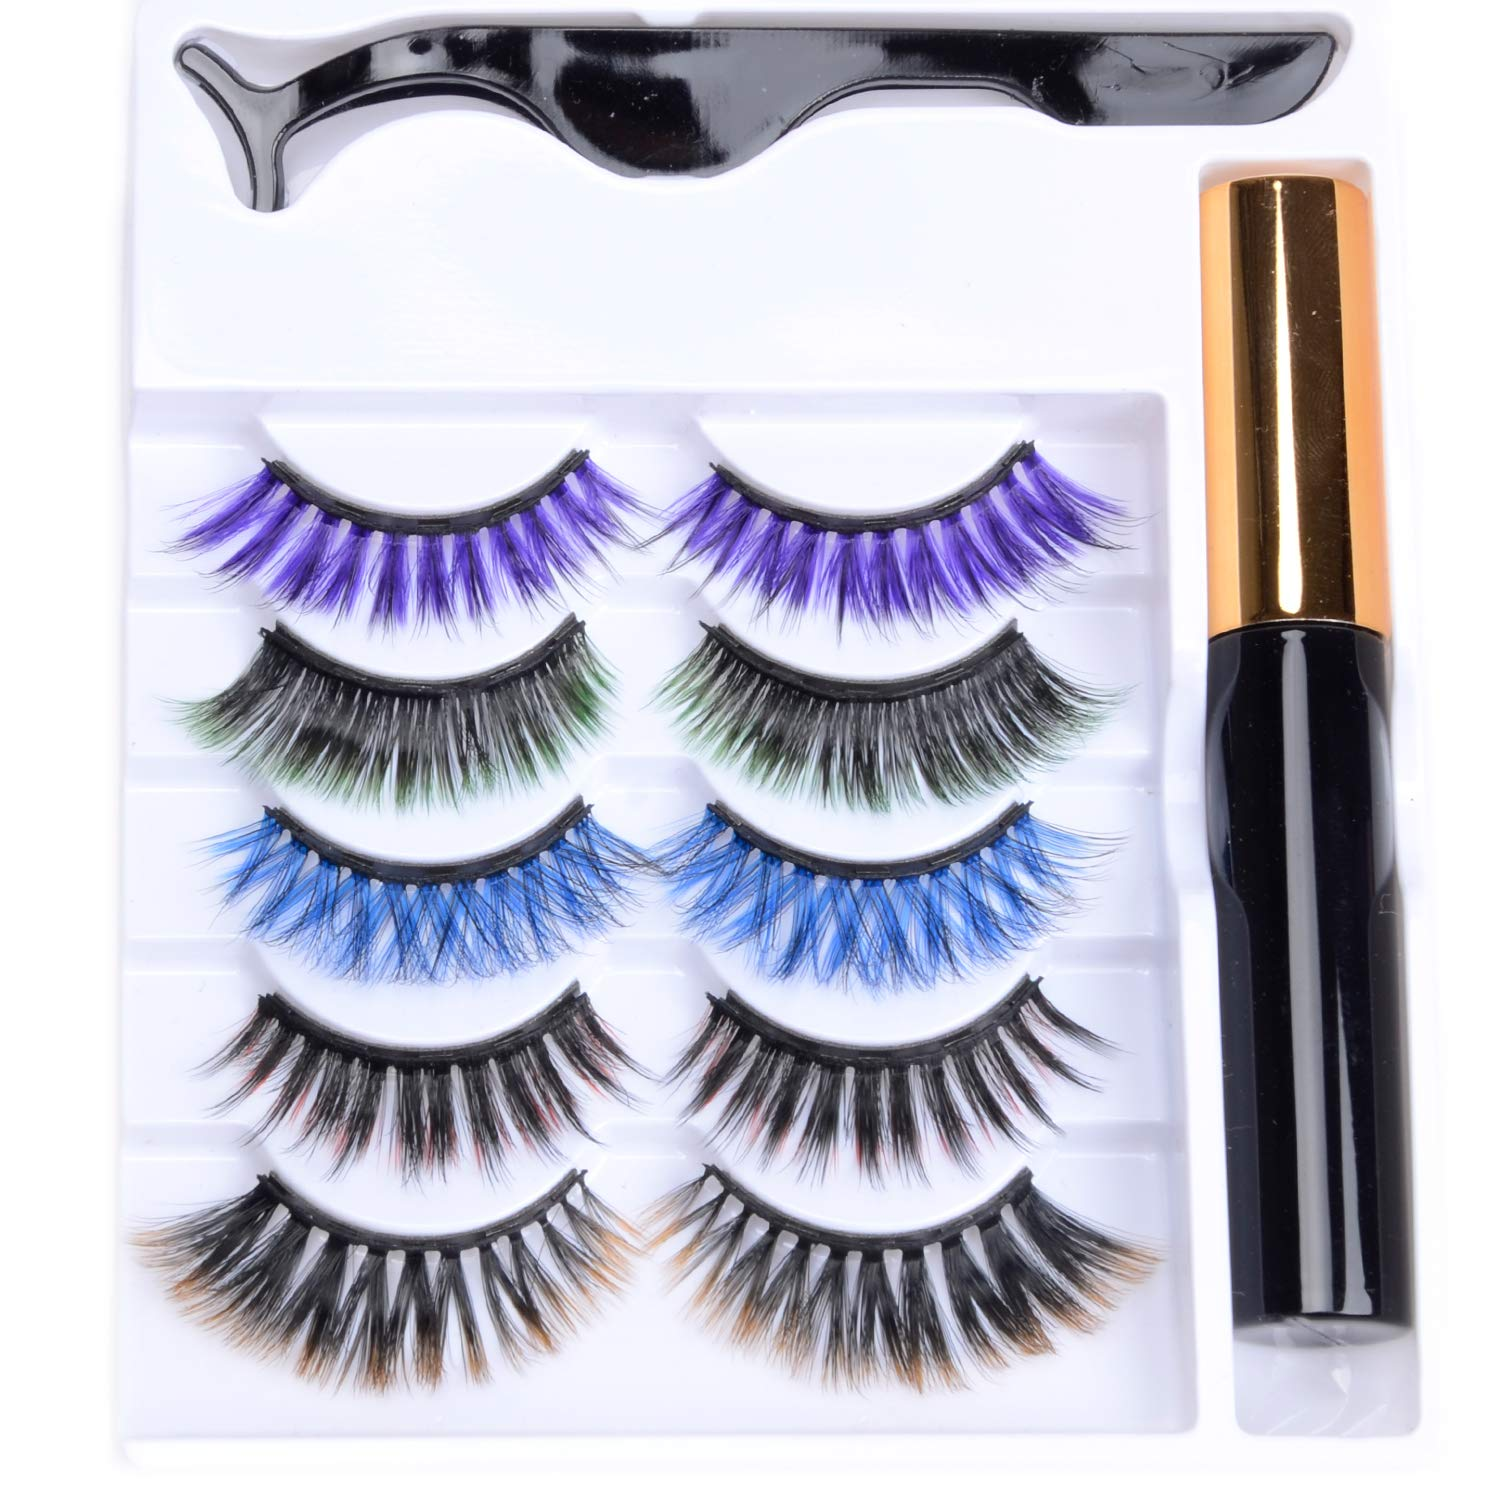 NAISIER Colorful Magnetic Eyeliner and Eyelashes Kit,Colorful Magnetic Eyeliner for Magnetic Eyelashes Set, 5 Pairs With Reusable Lashes [Colorful]